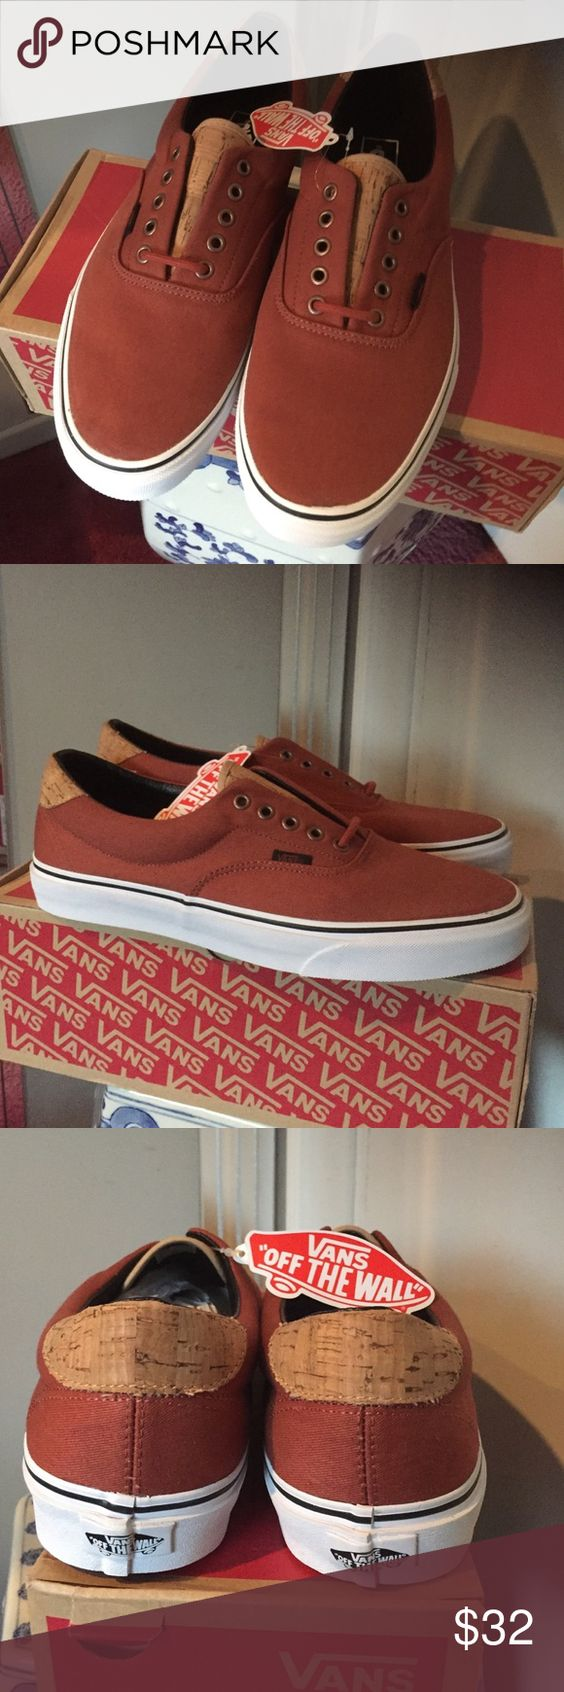 New Authentic Vans men's shoes Nice Orange brown canvas with cork like accent Vans Shoes Sneakers